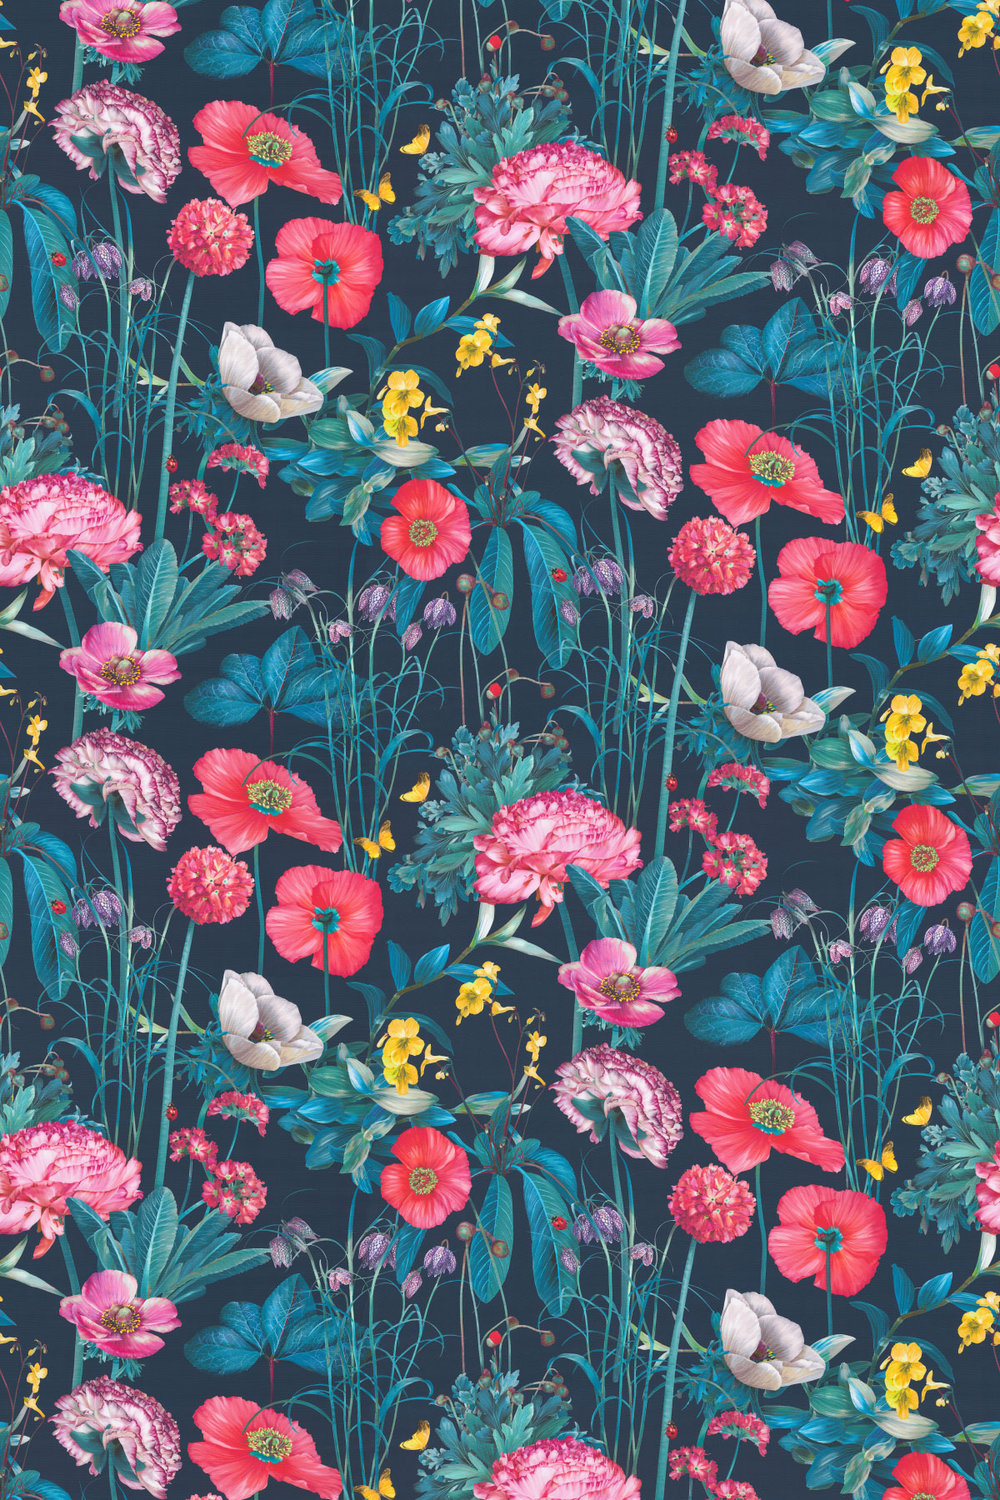 Meadow Fabric - Midnight / Coral / Teal - by Osborne & Little